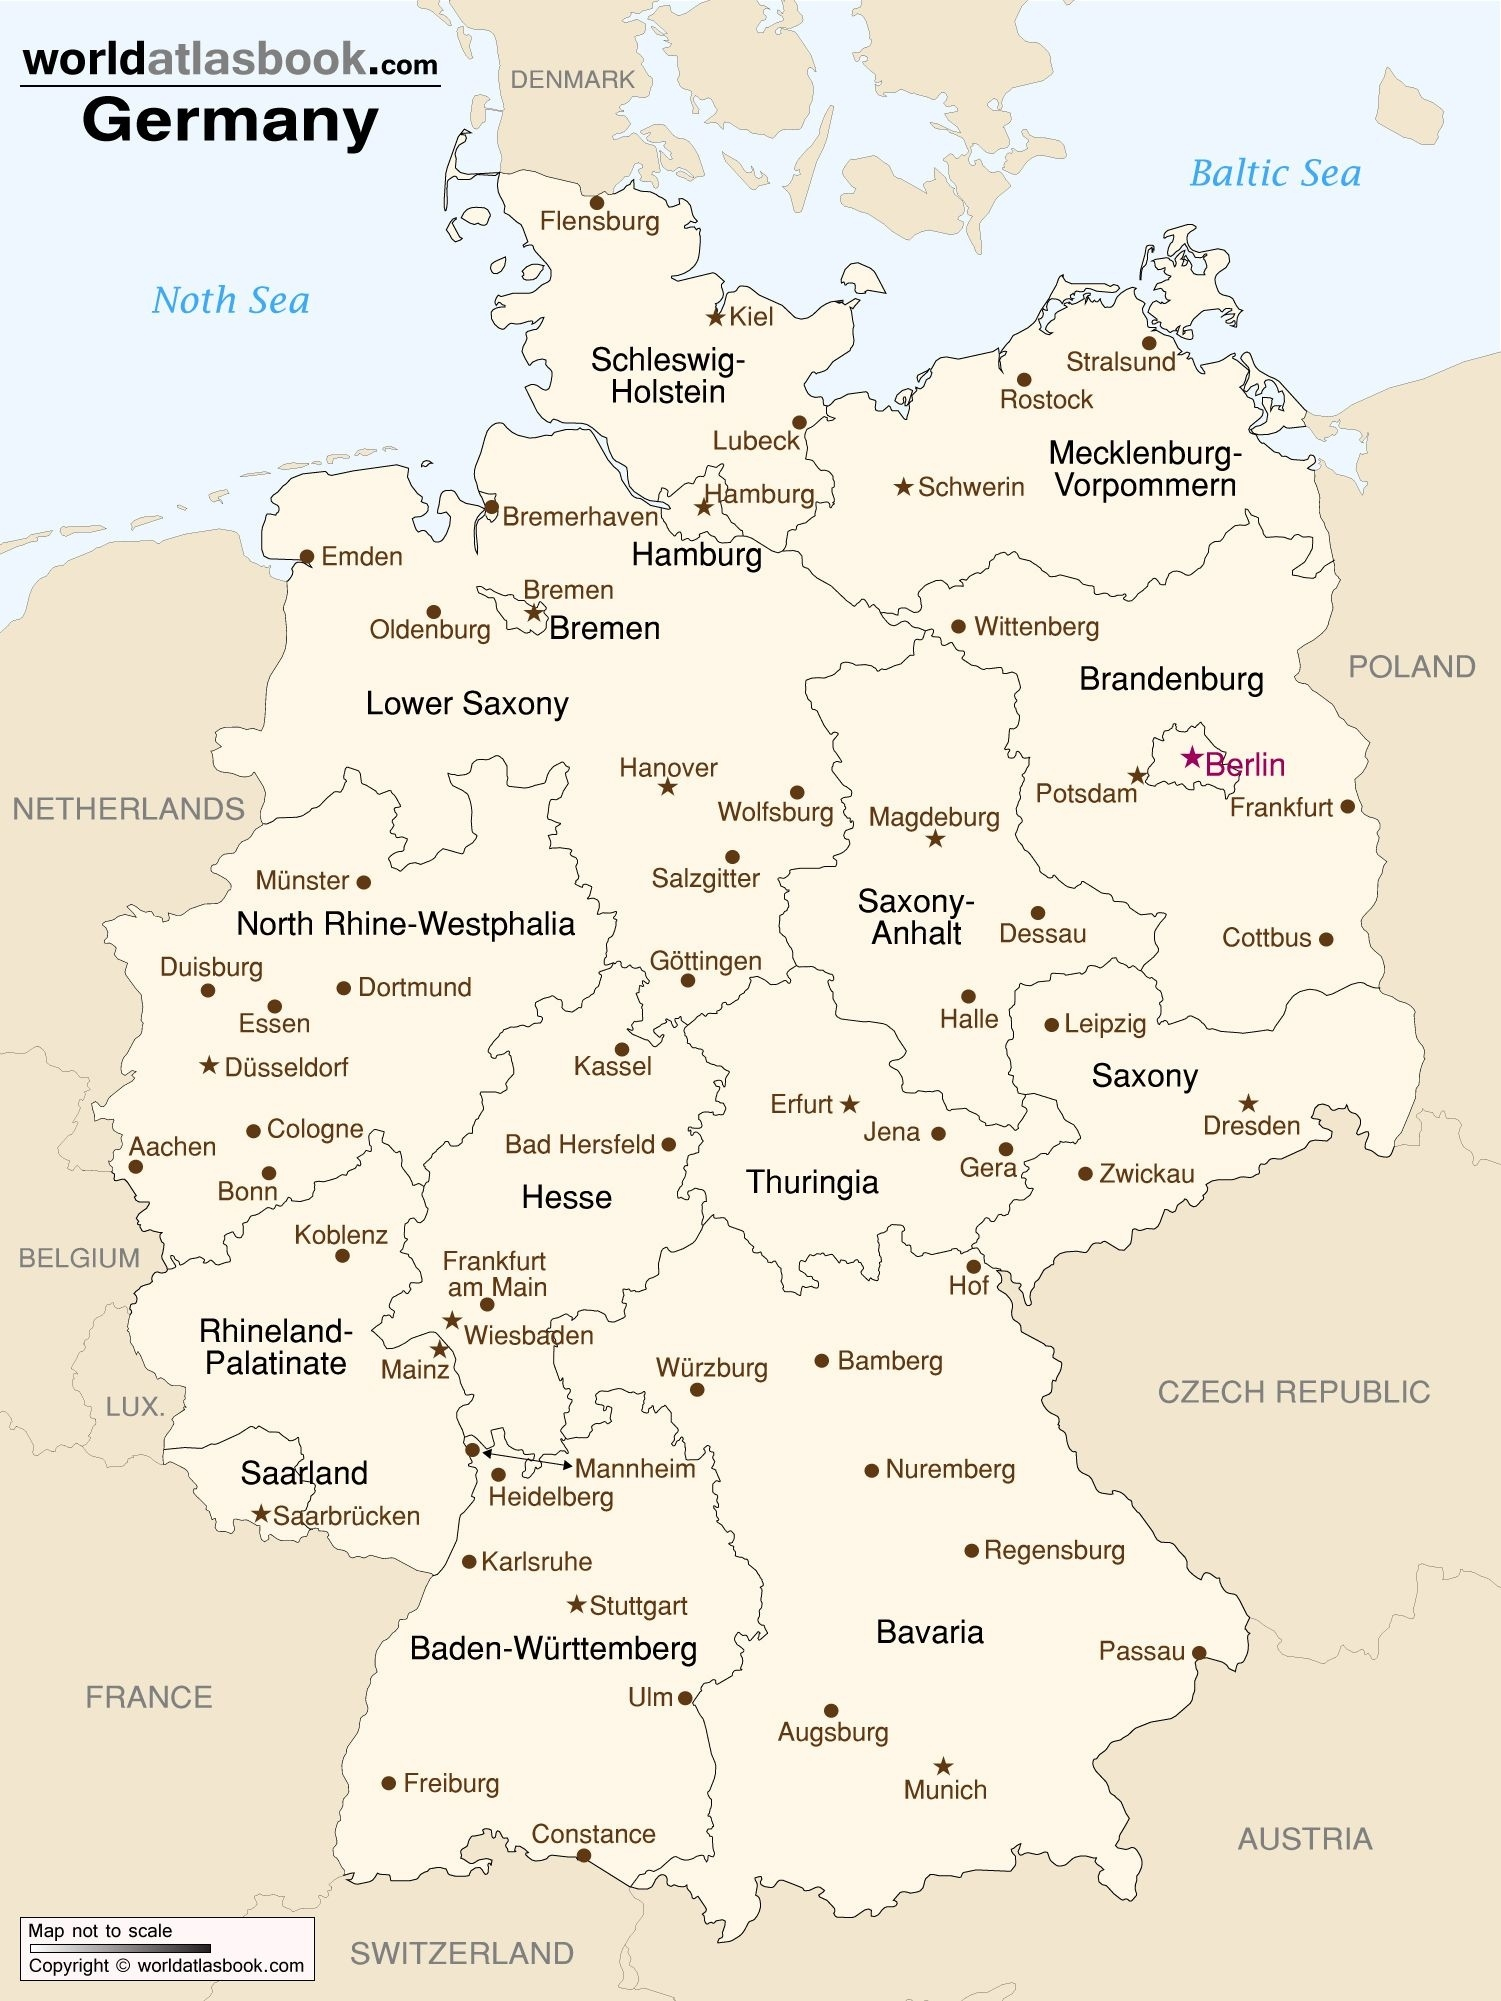 Map Of Germany With States And Cities | Germany | Map, Germany for Map Of Germany With States And Capitals In German